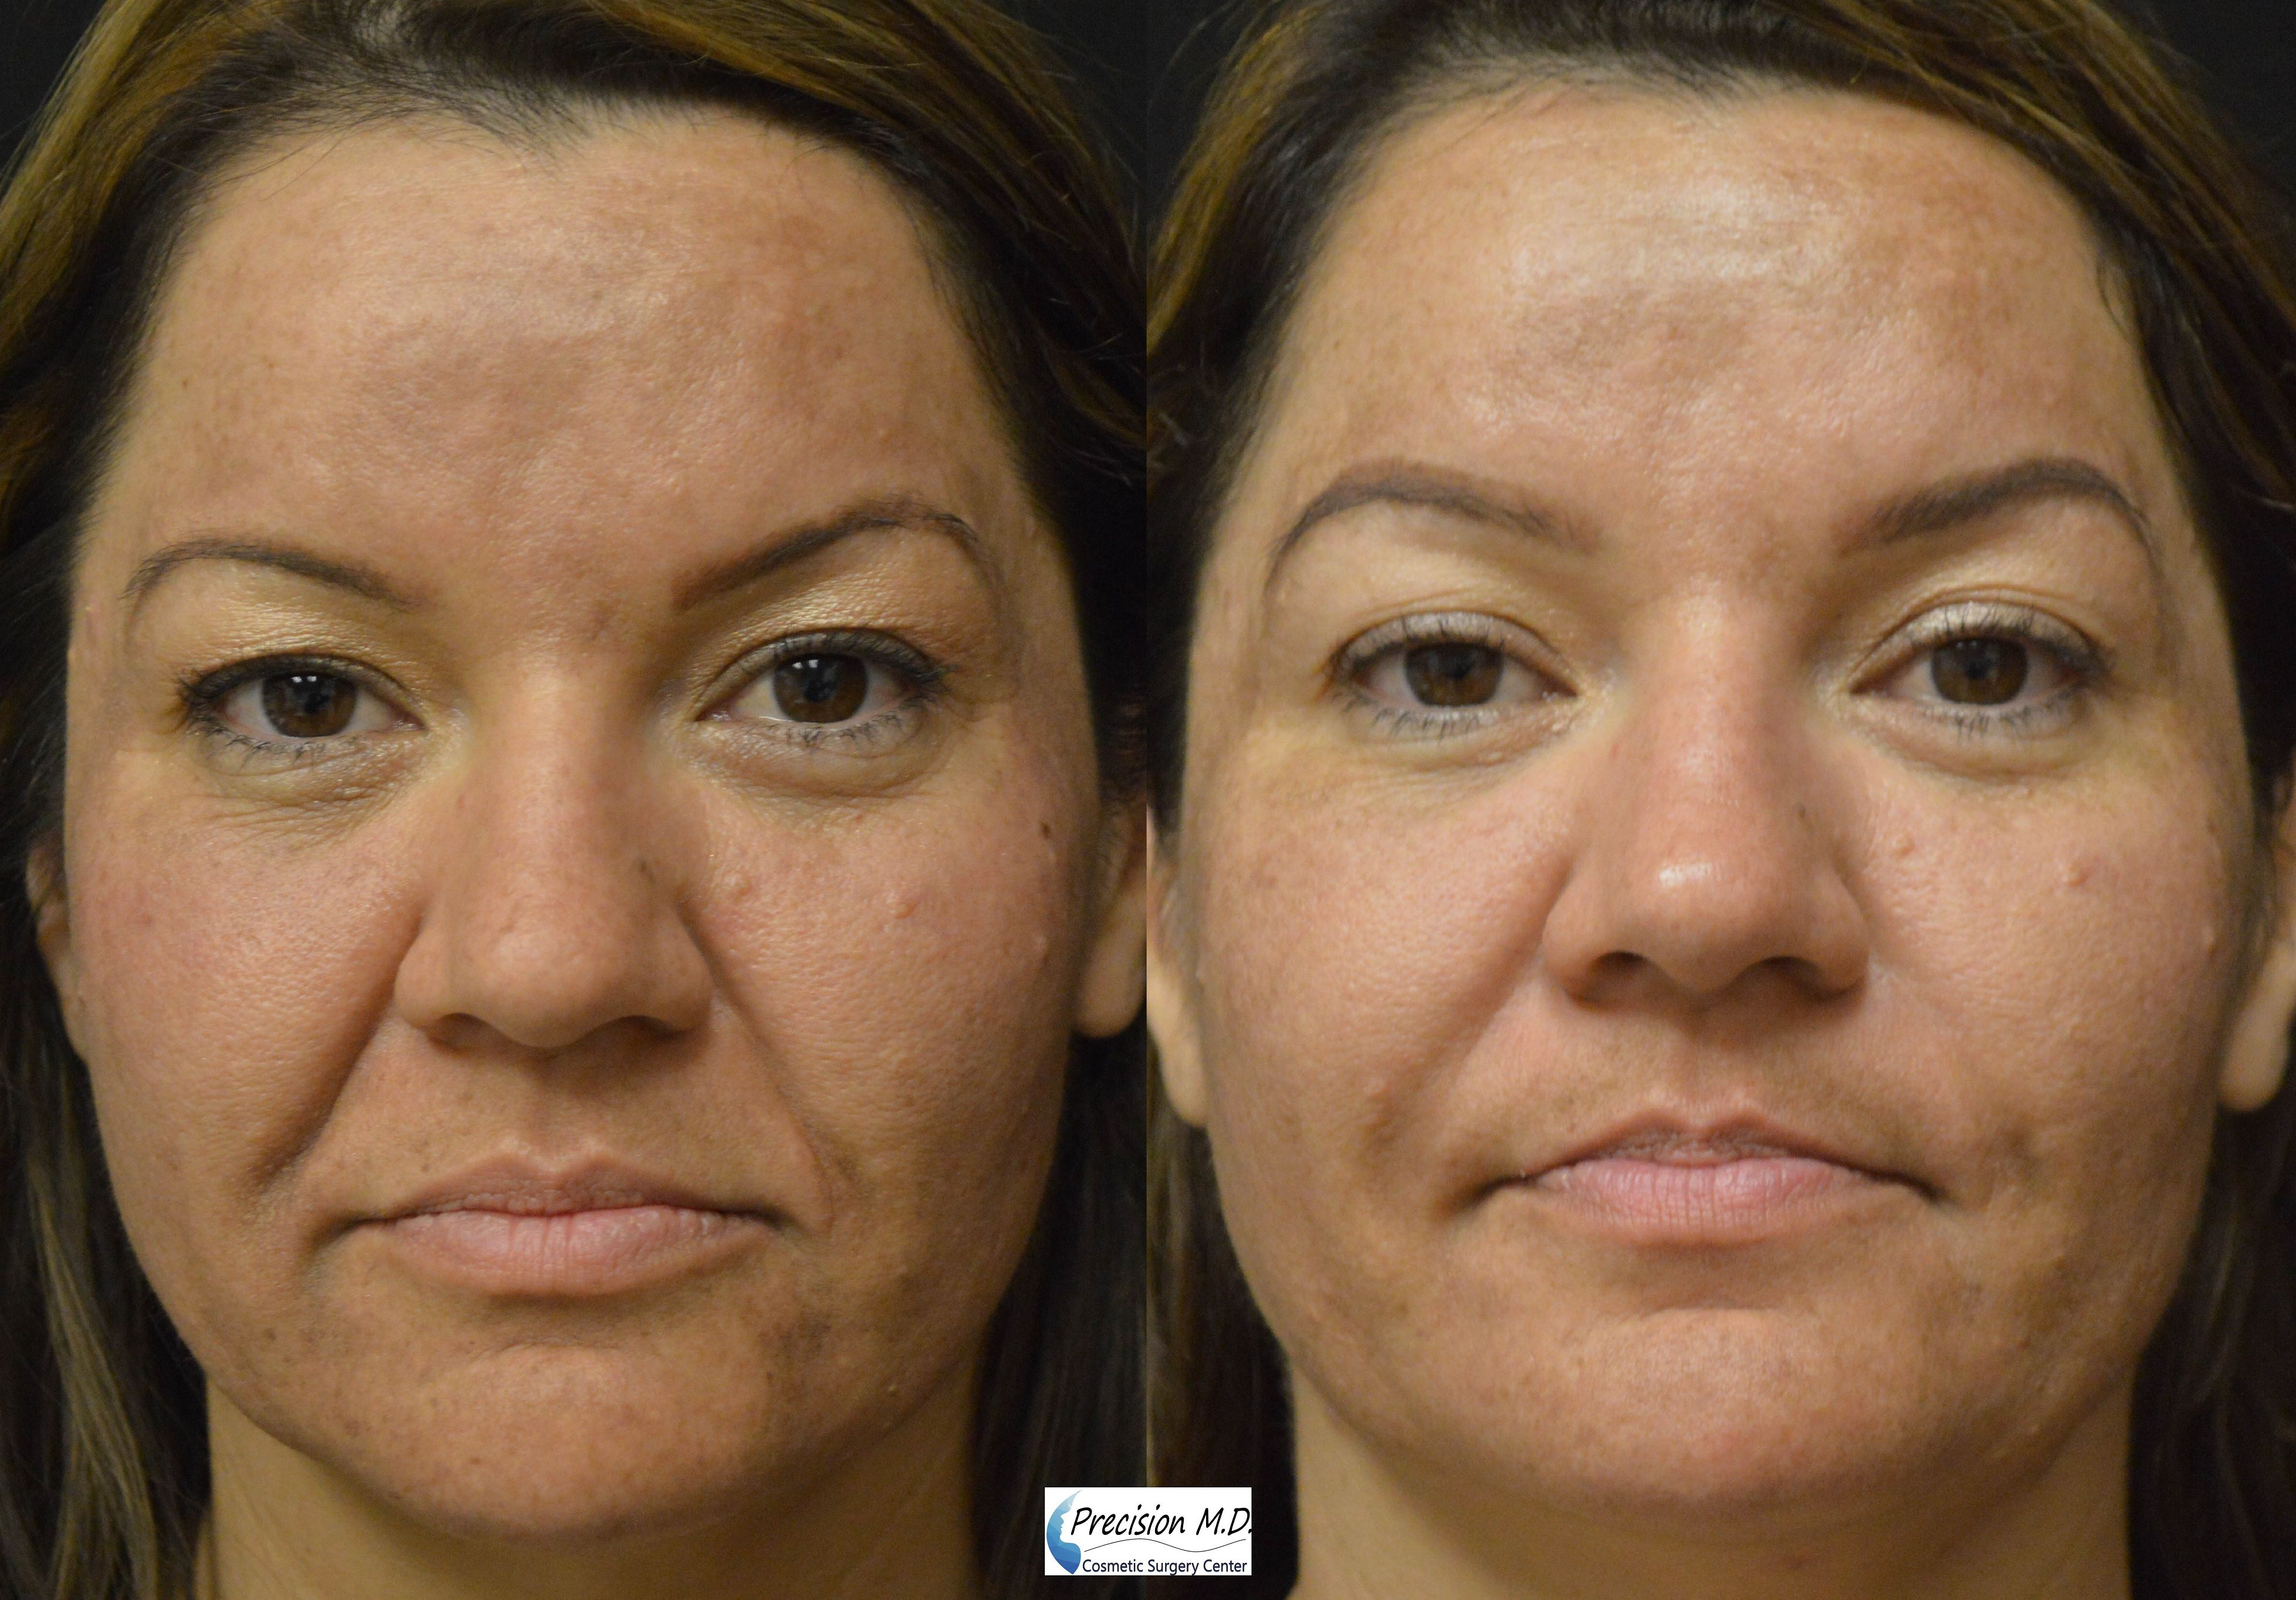 Clear Brilliant Sacramento Facial Rejuvenation Sacramento Daily Skin Care Regimen Facial Rejuvenation Skin Care Regimen